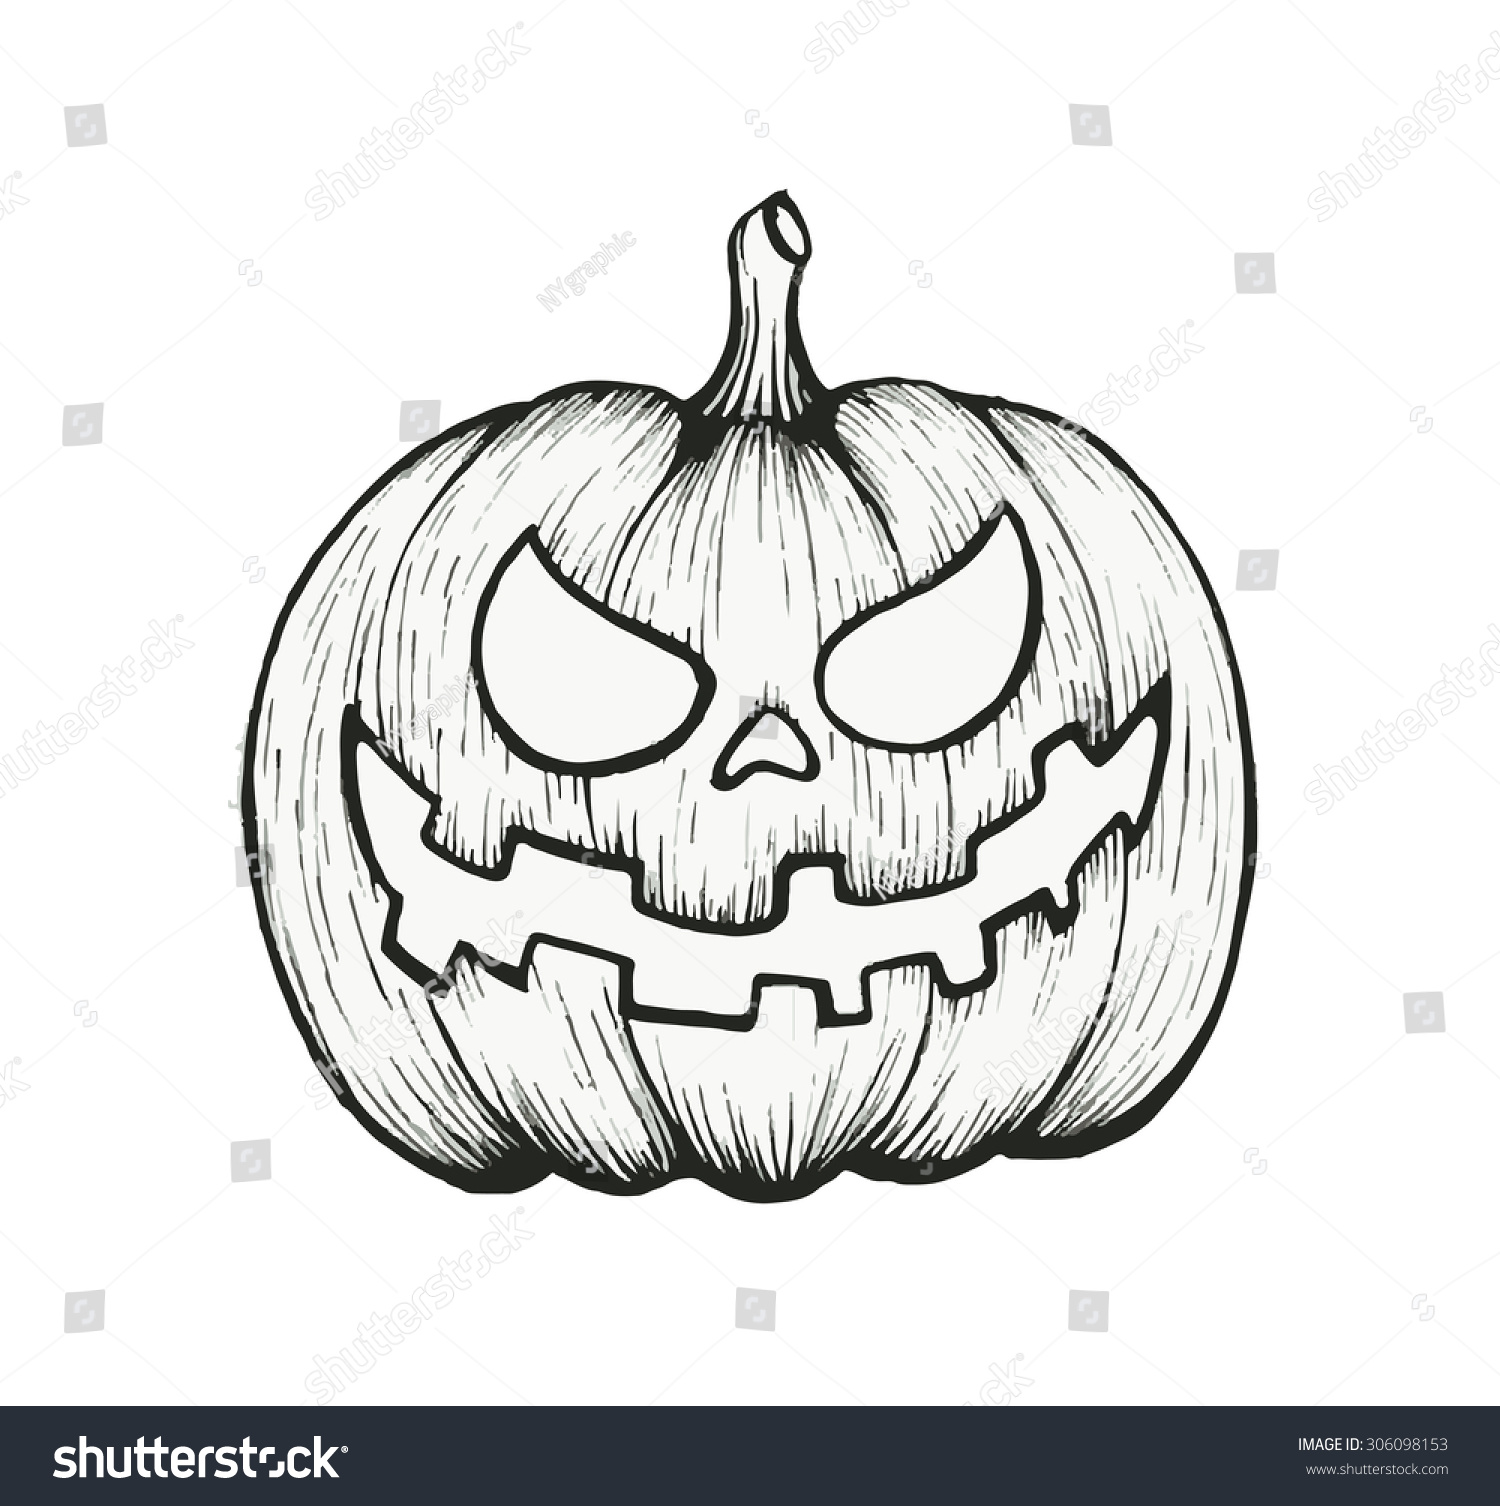 Halloween Pumpkin Drawing Picture.Vector Hand Draw Halloween Pumpkin Stock Vector Royalty Free 306098153